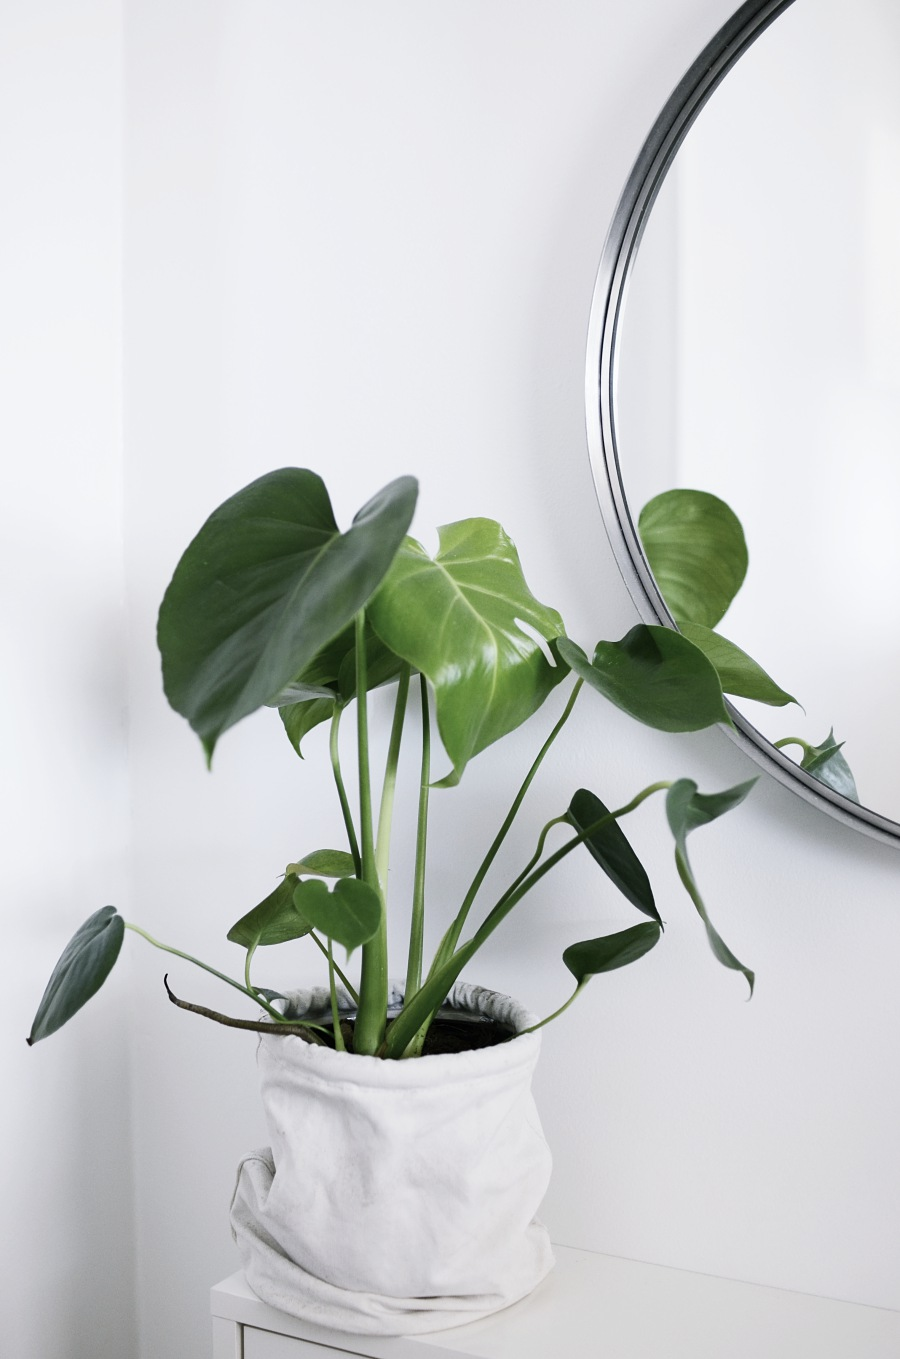 FENG SHUI HALL, monstera, spegel rund, ikea skoskåp